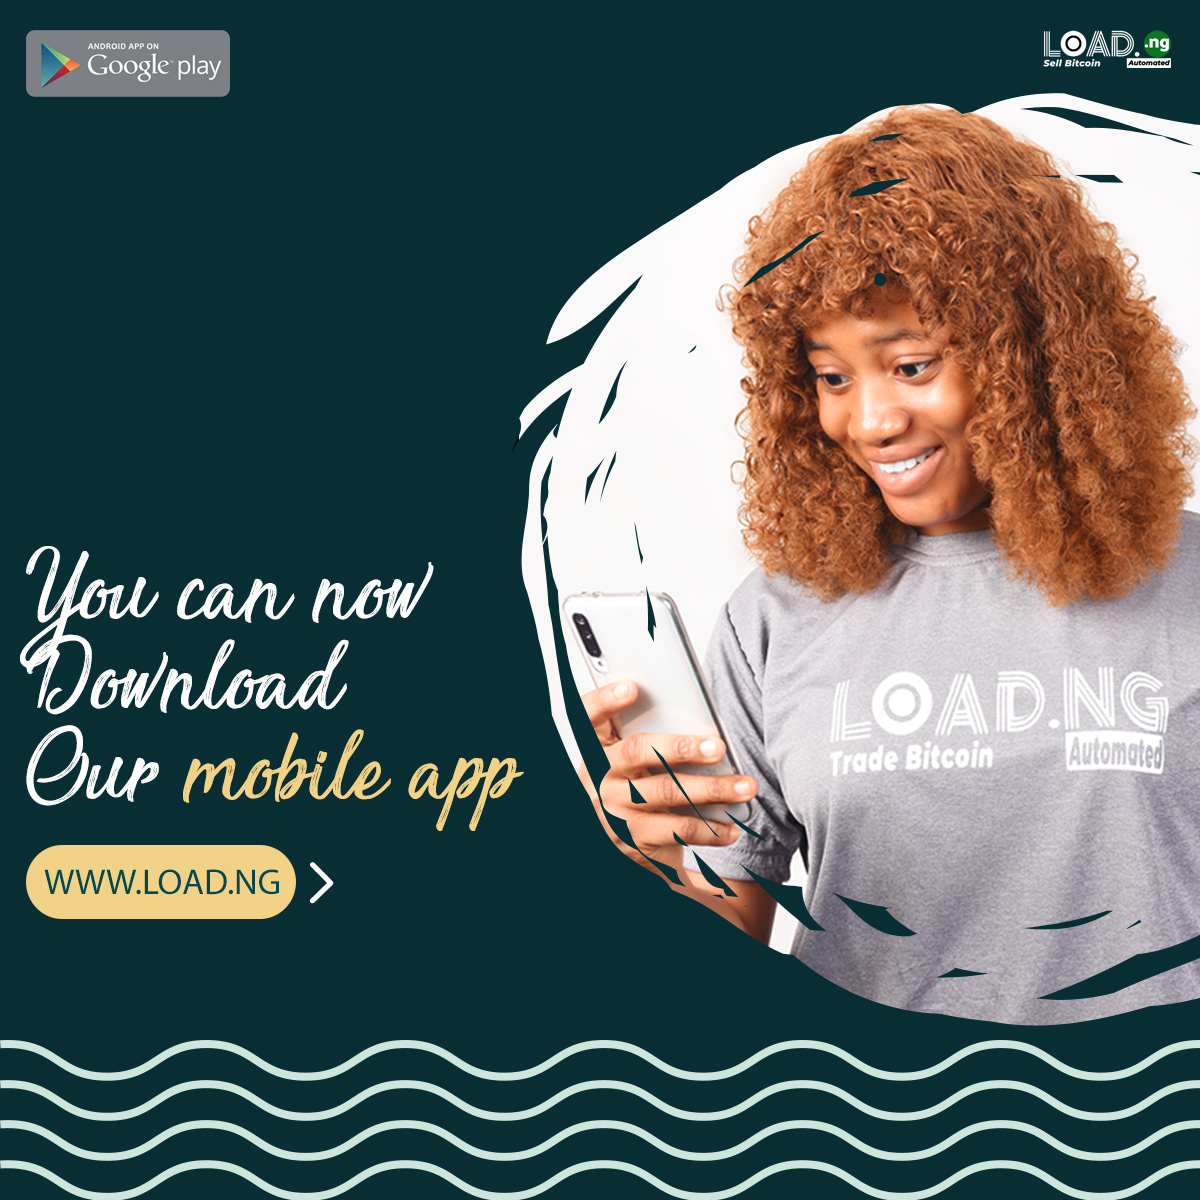 LoadNG Launches mobile app